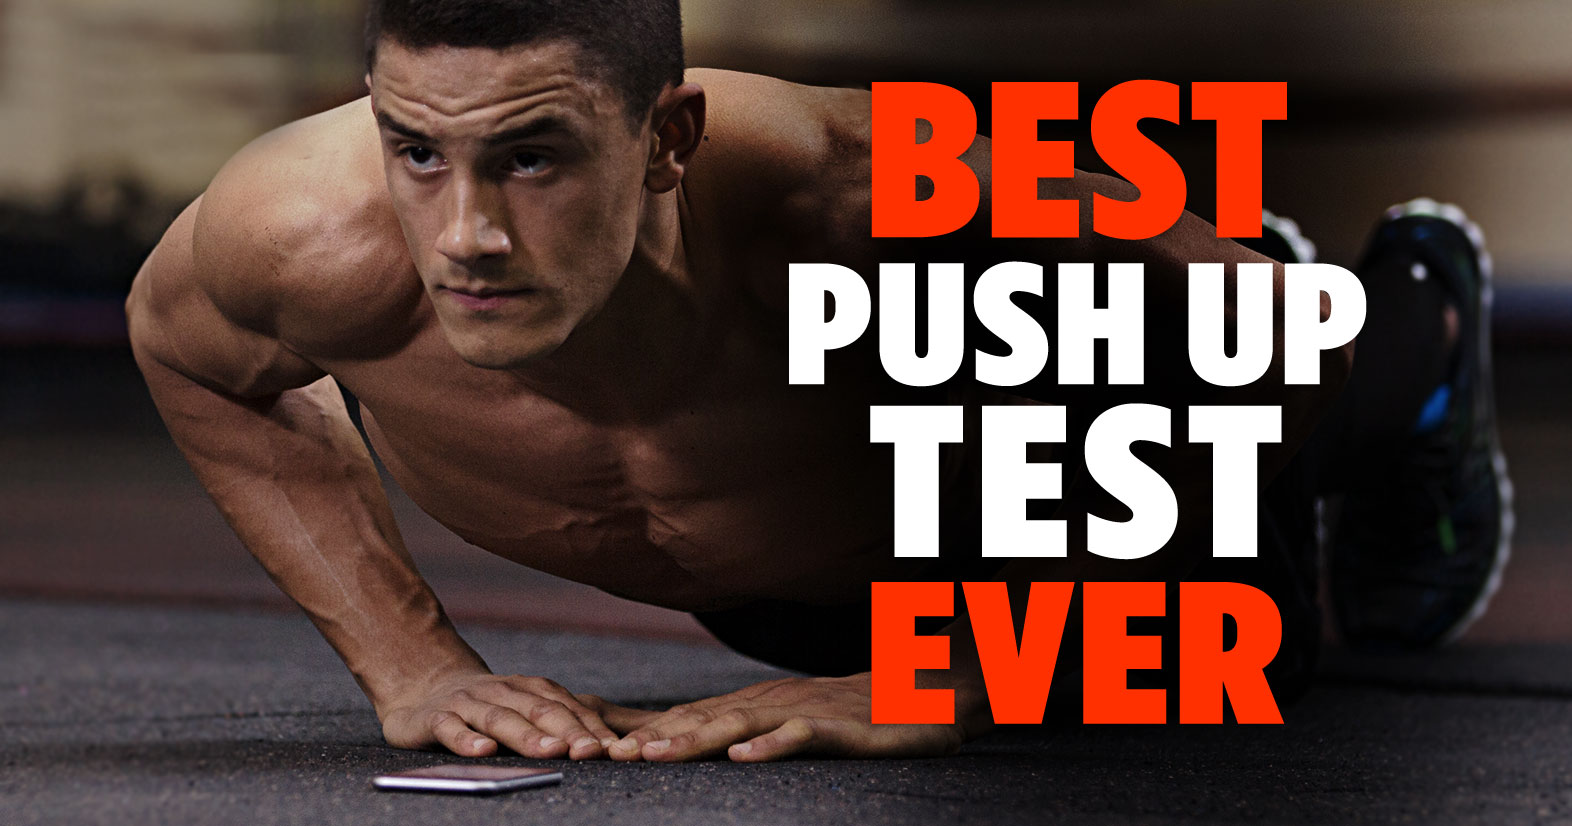 best push up test ever what 39 s your score. Black Bedroom Furniture Sets. Home Design Ideas